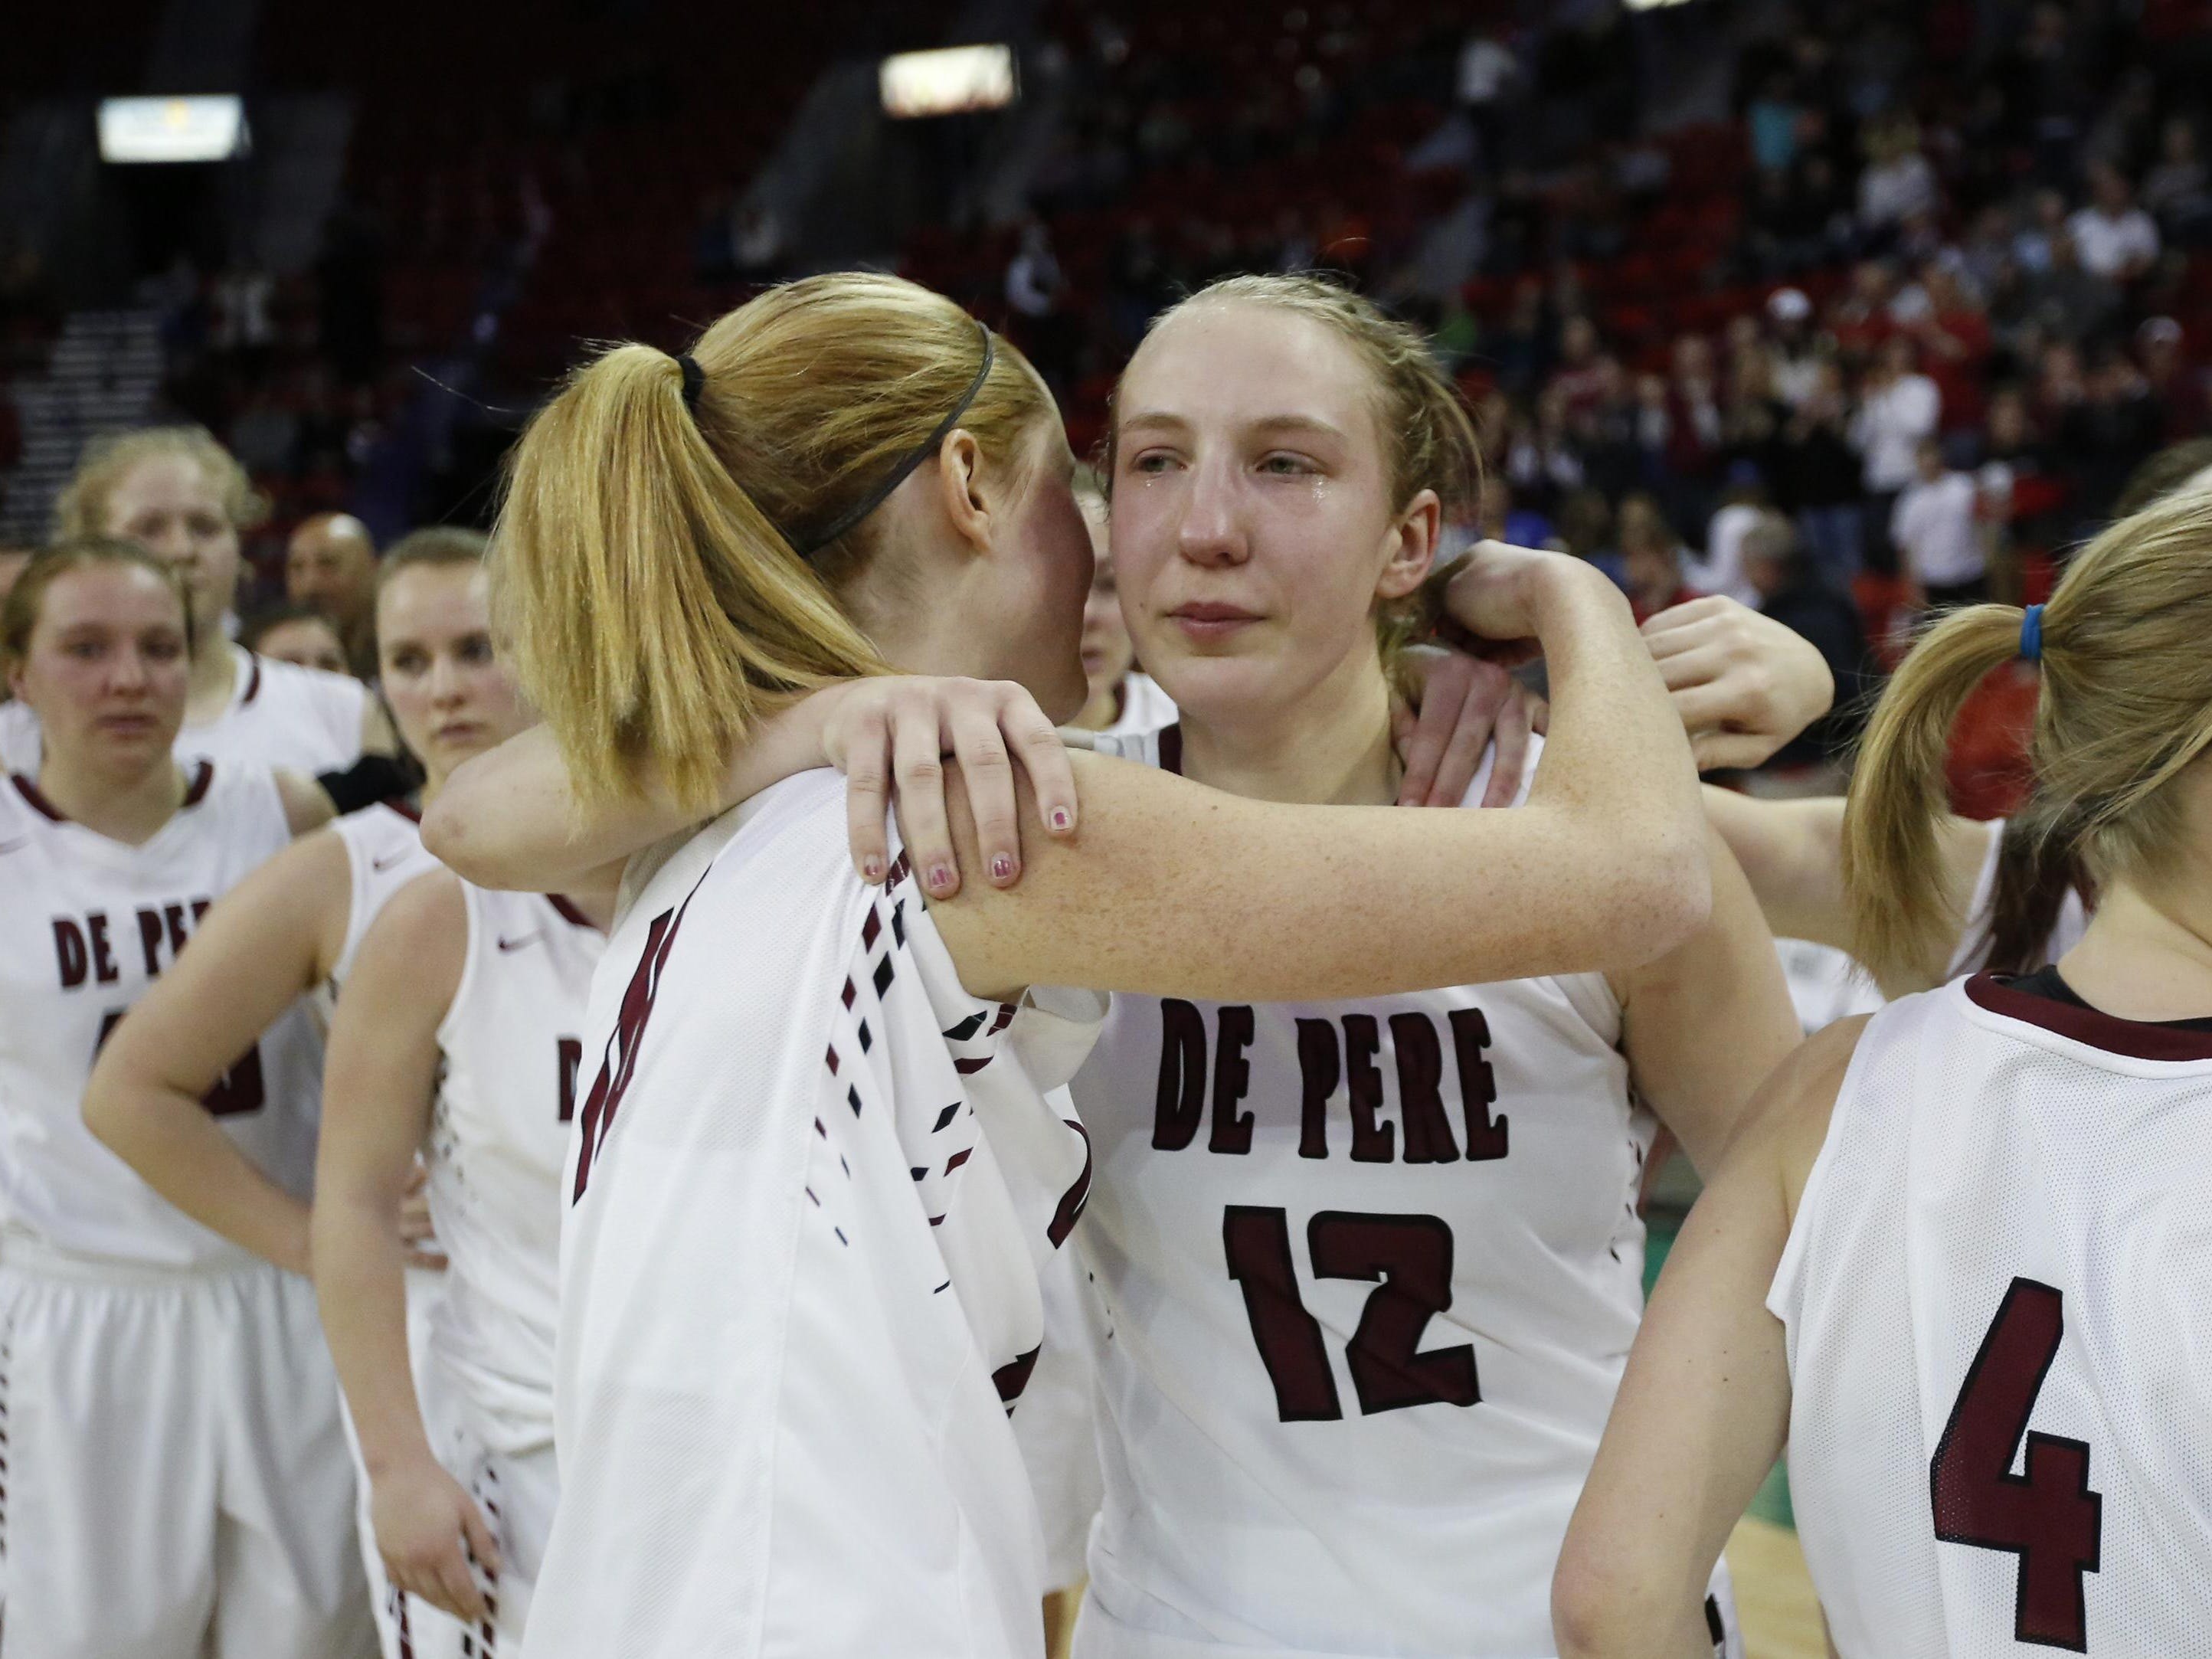 De Pere's Lizzie Miller hugs teammate Lauren DeMille after their loss to Appleton North High in the WIAA Division 1 State Tournament girls basketball championship game Saturday at the Resch Center in Ashwaubenon. See more photos from the game at greenbaypressgazette.com.